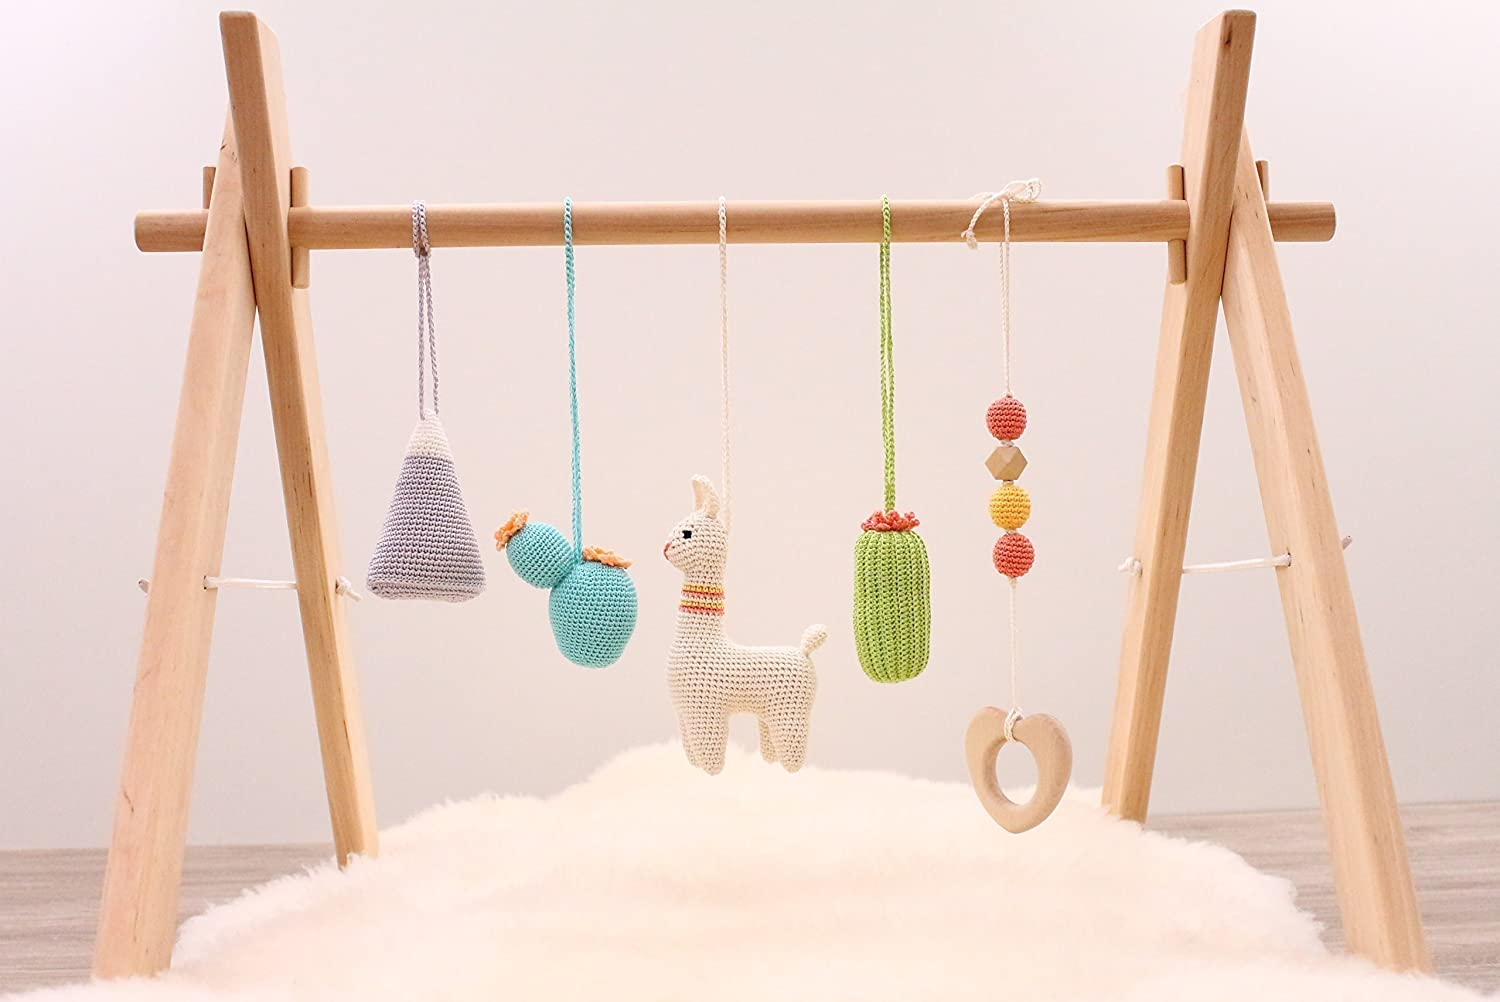 Desert Baby play gym with 5 mobiles: llama, cactus, succulent, mountain, Wooden heart. Wooden baby gym, crochet mobiles. Boho. Travel. Infant activity center. Handmade in Eastern Europe.